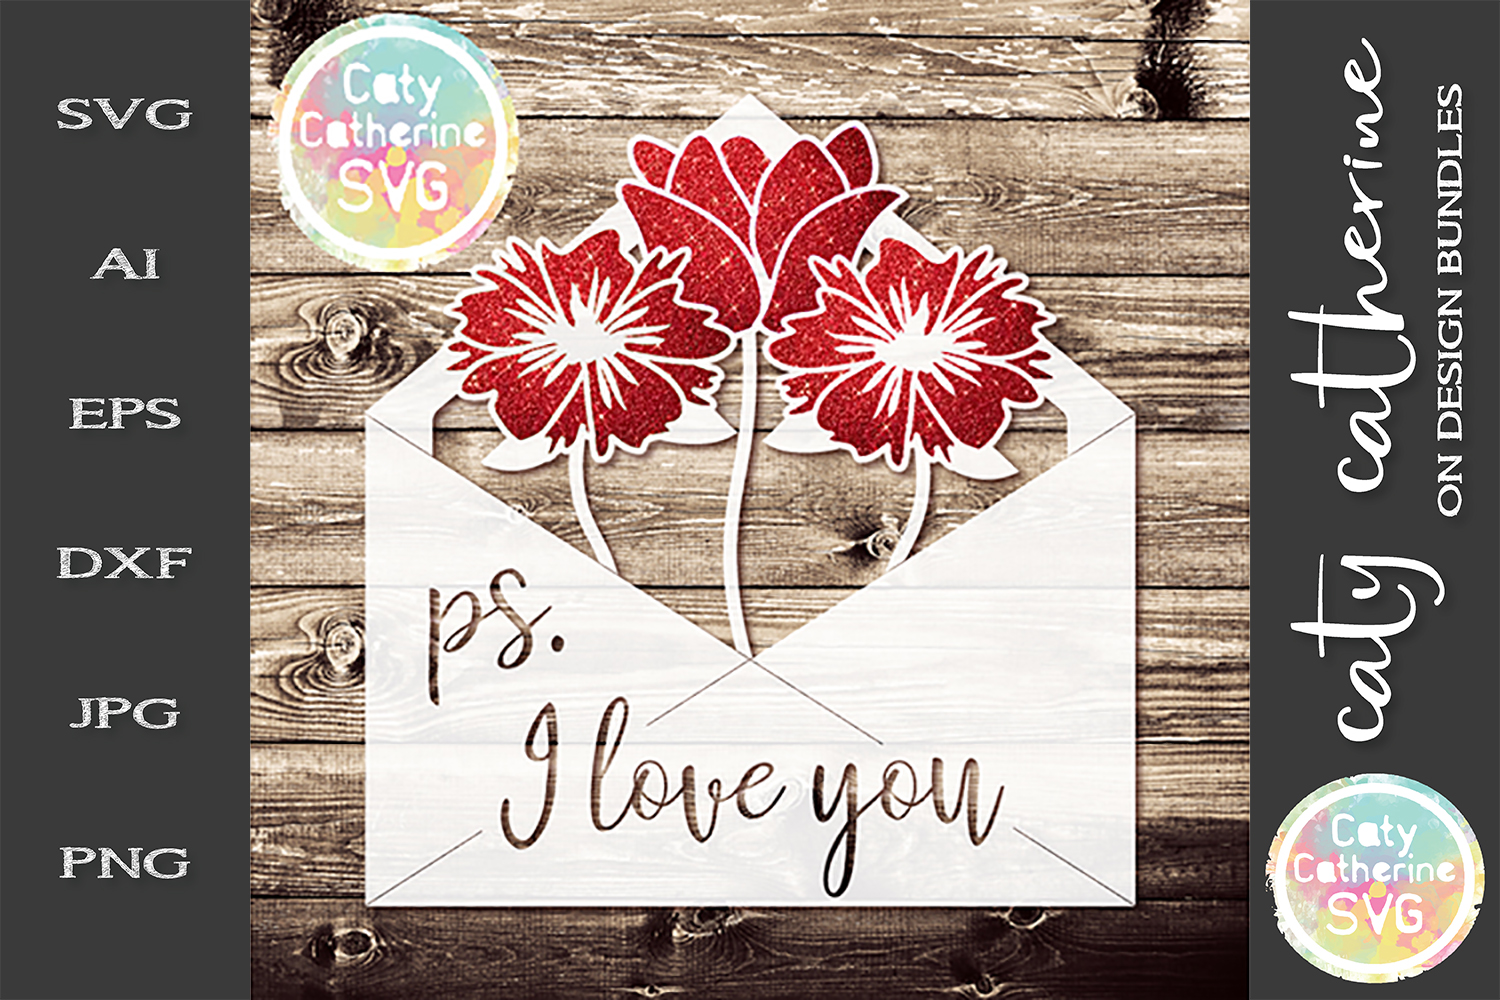 P.s. I Love You Envelope With Flowers SVG Cut File example image 1